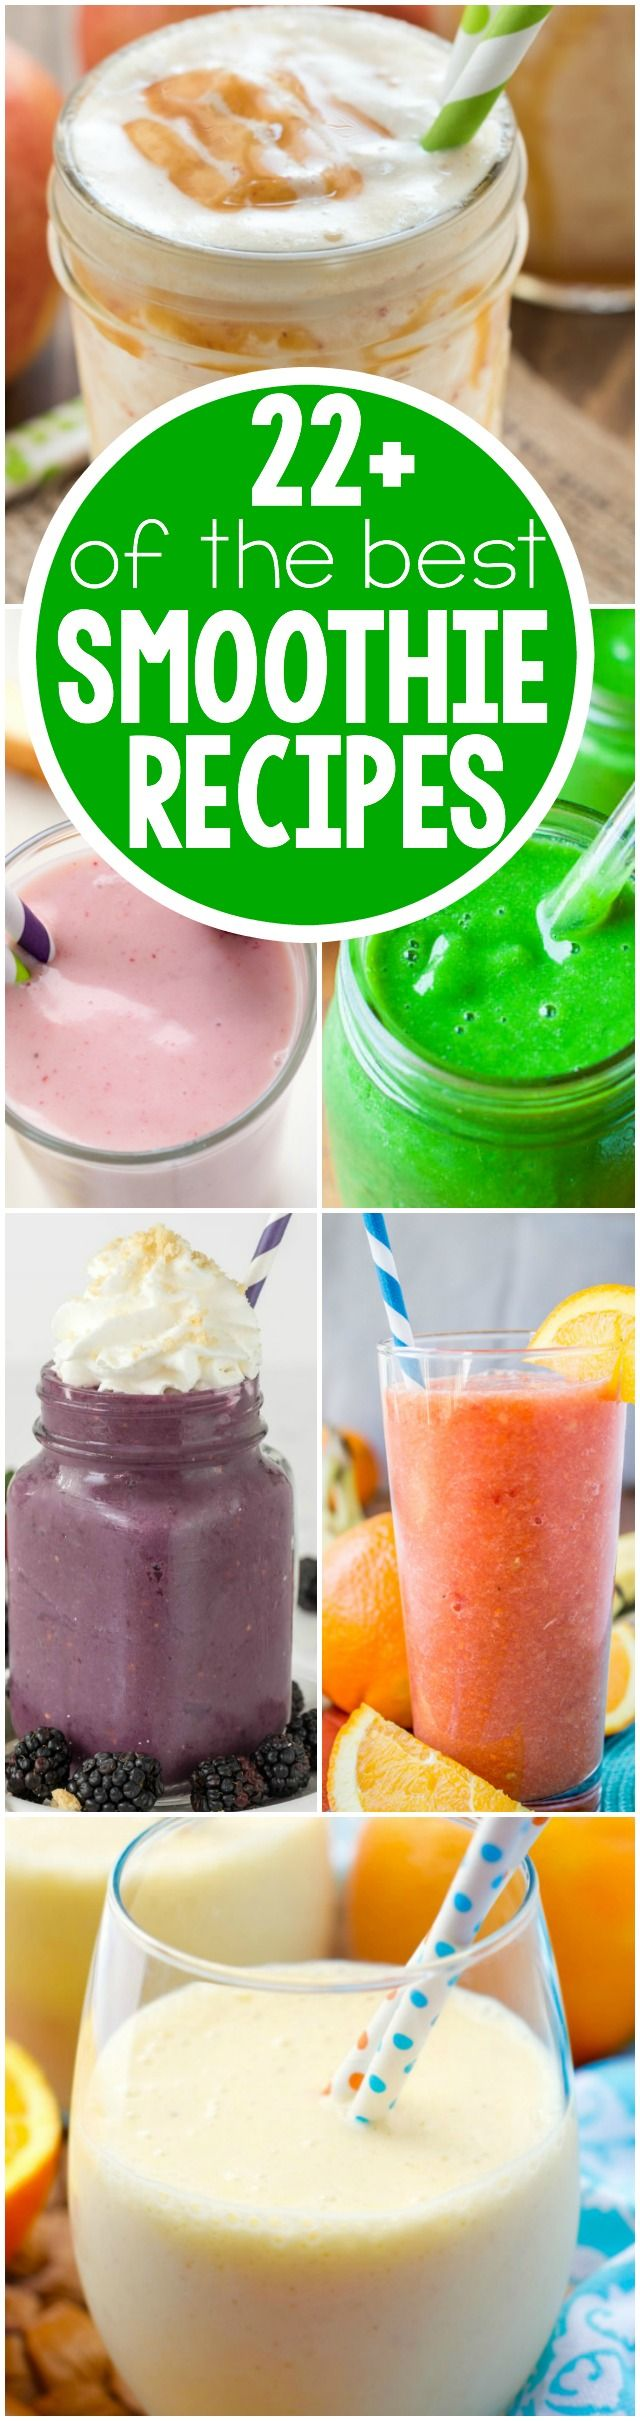 22 of the BEST Smoothie Recipes that will help you with your healthier eating goal this year!